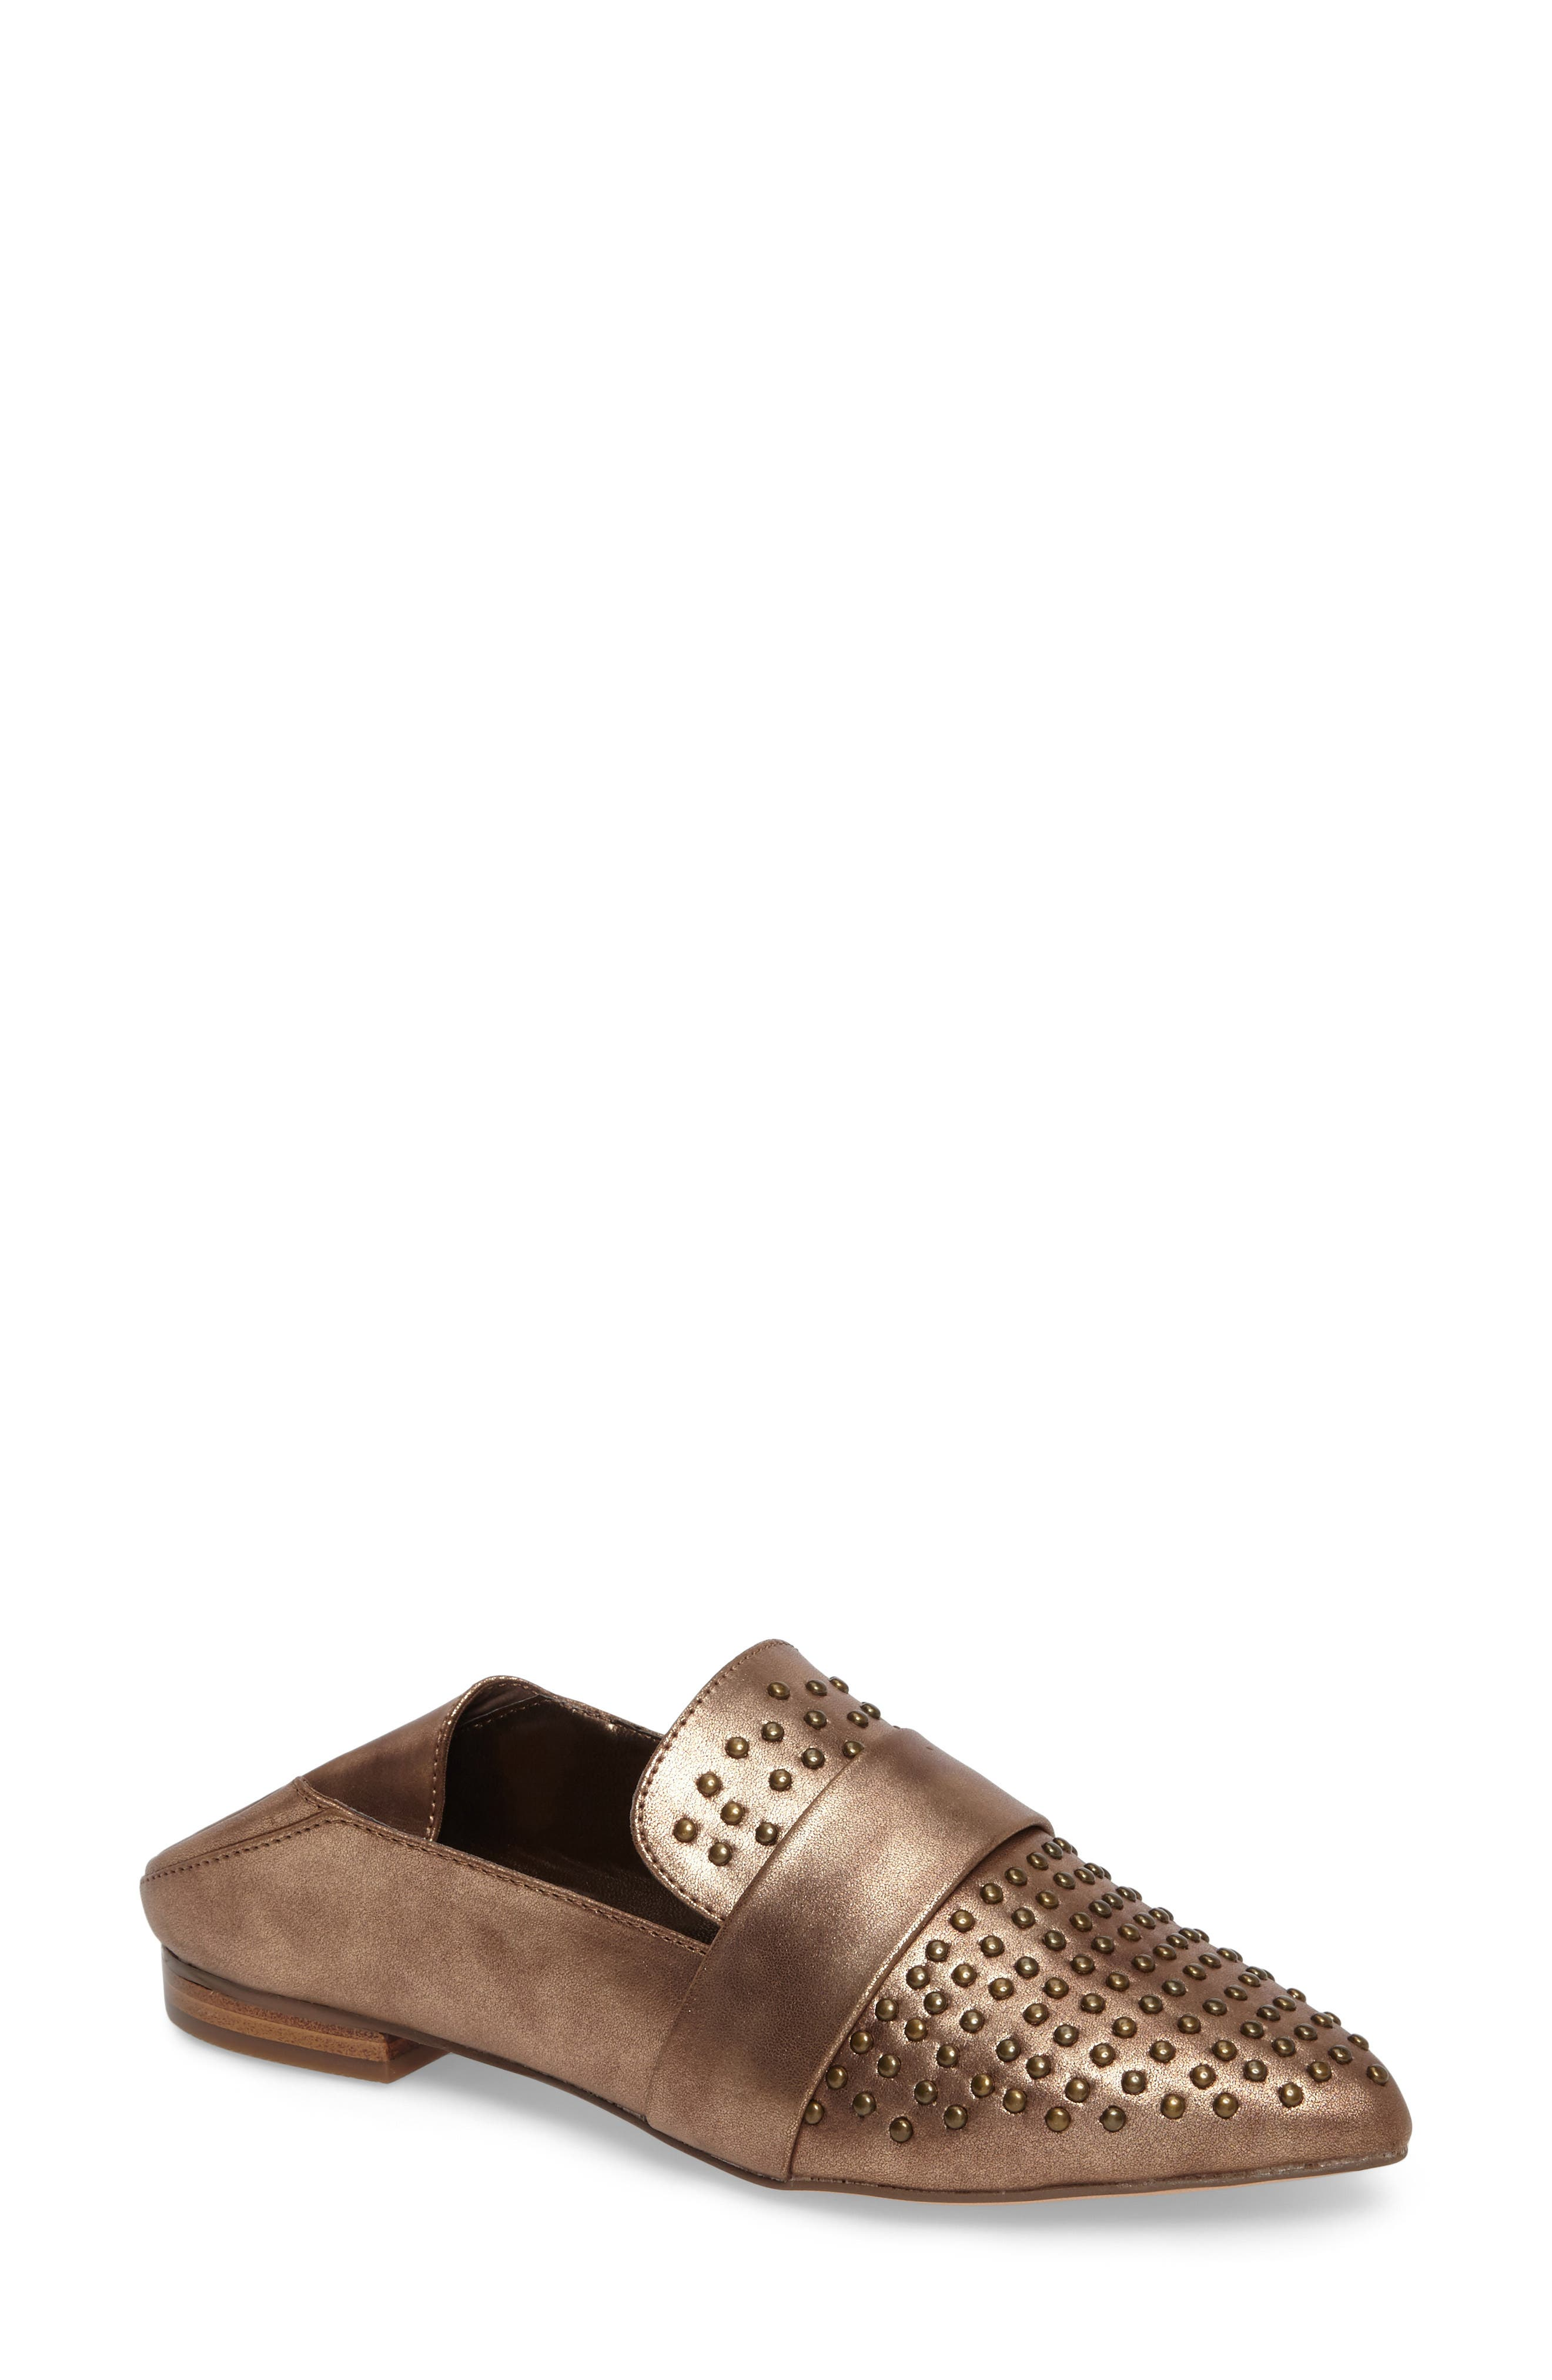 Main Image - Coconuts by Matisse Felix Convertible Loafer (Women)